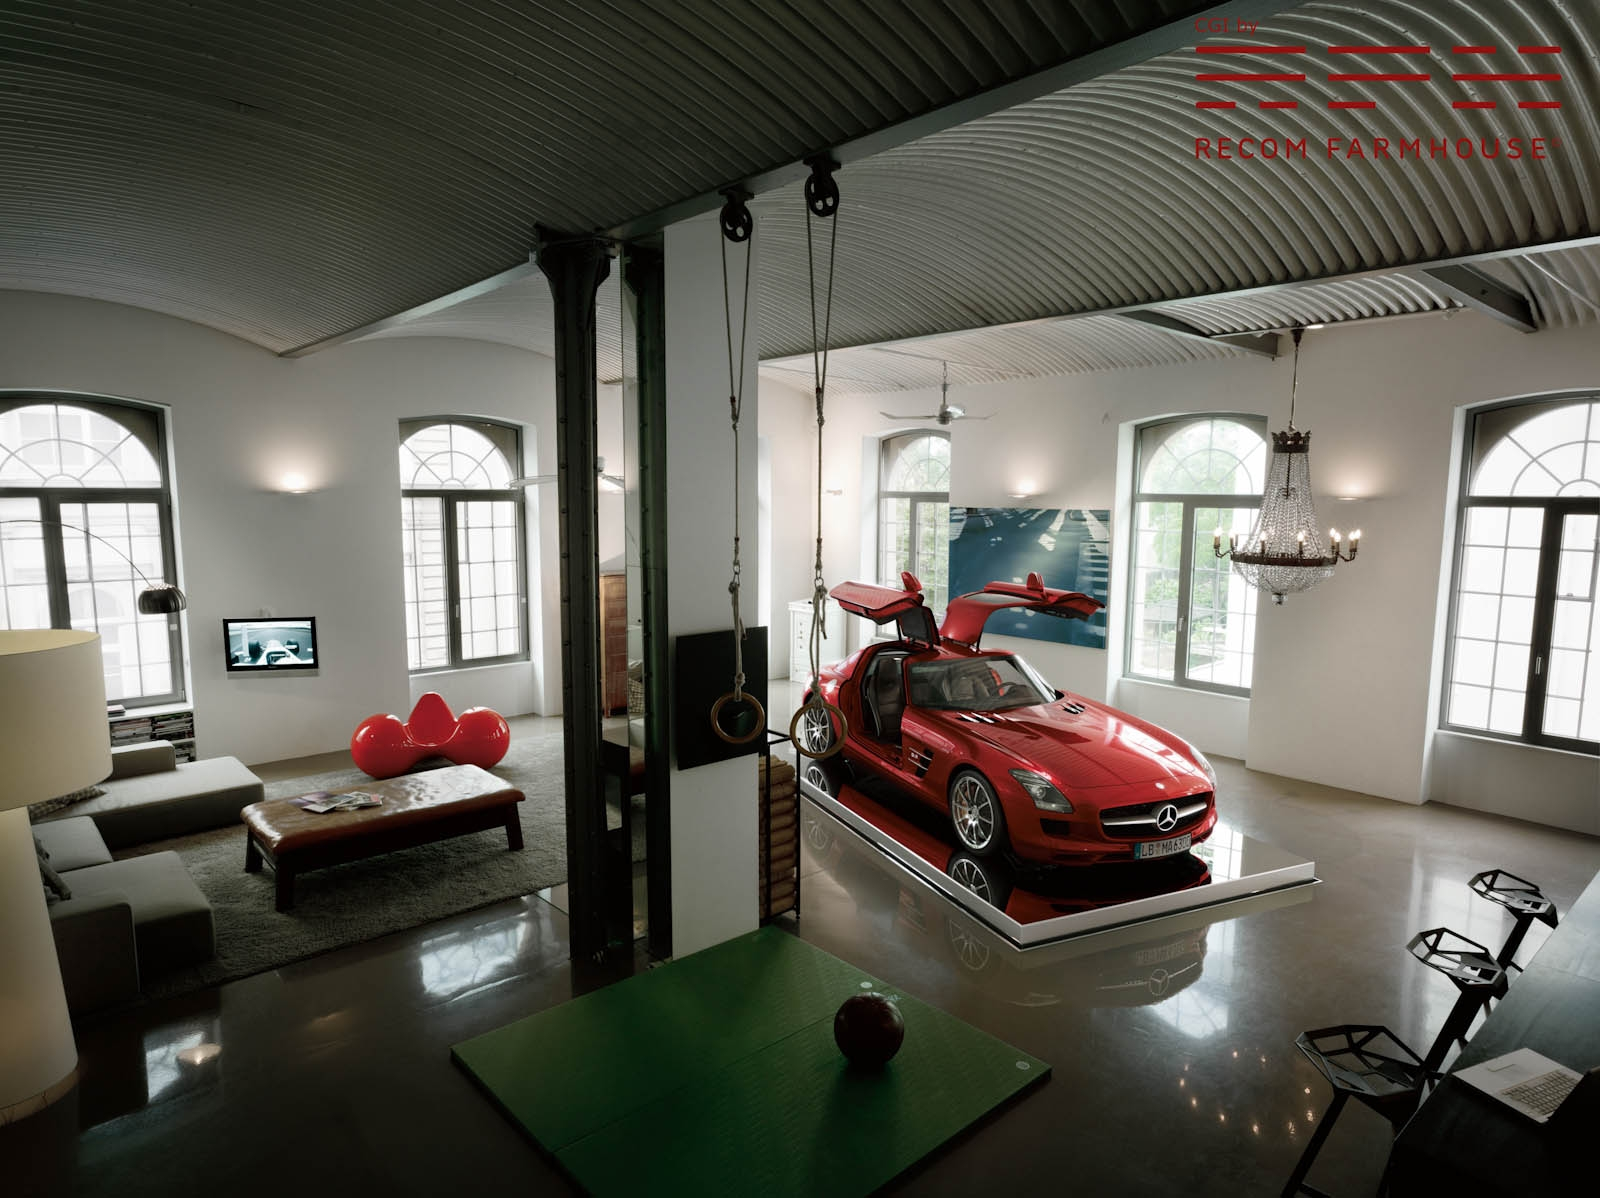 Eurotuner europe dreamgarages part 2 is this real for Living room garage